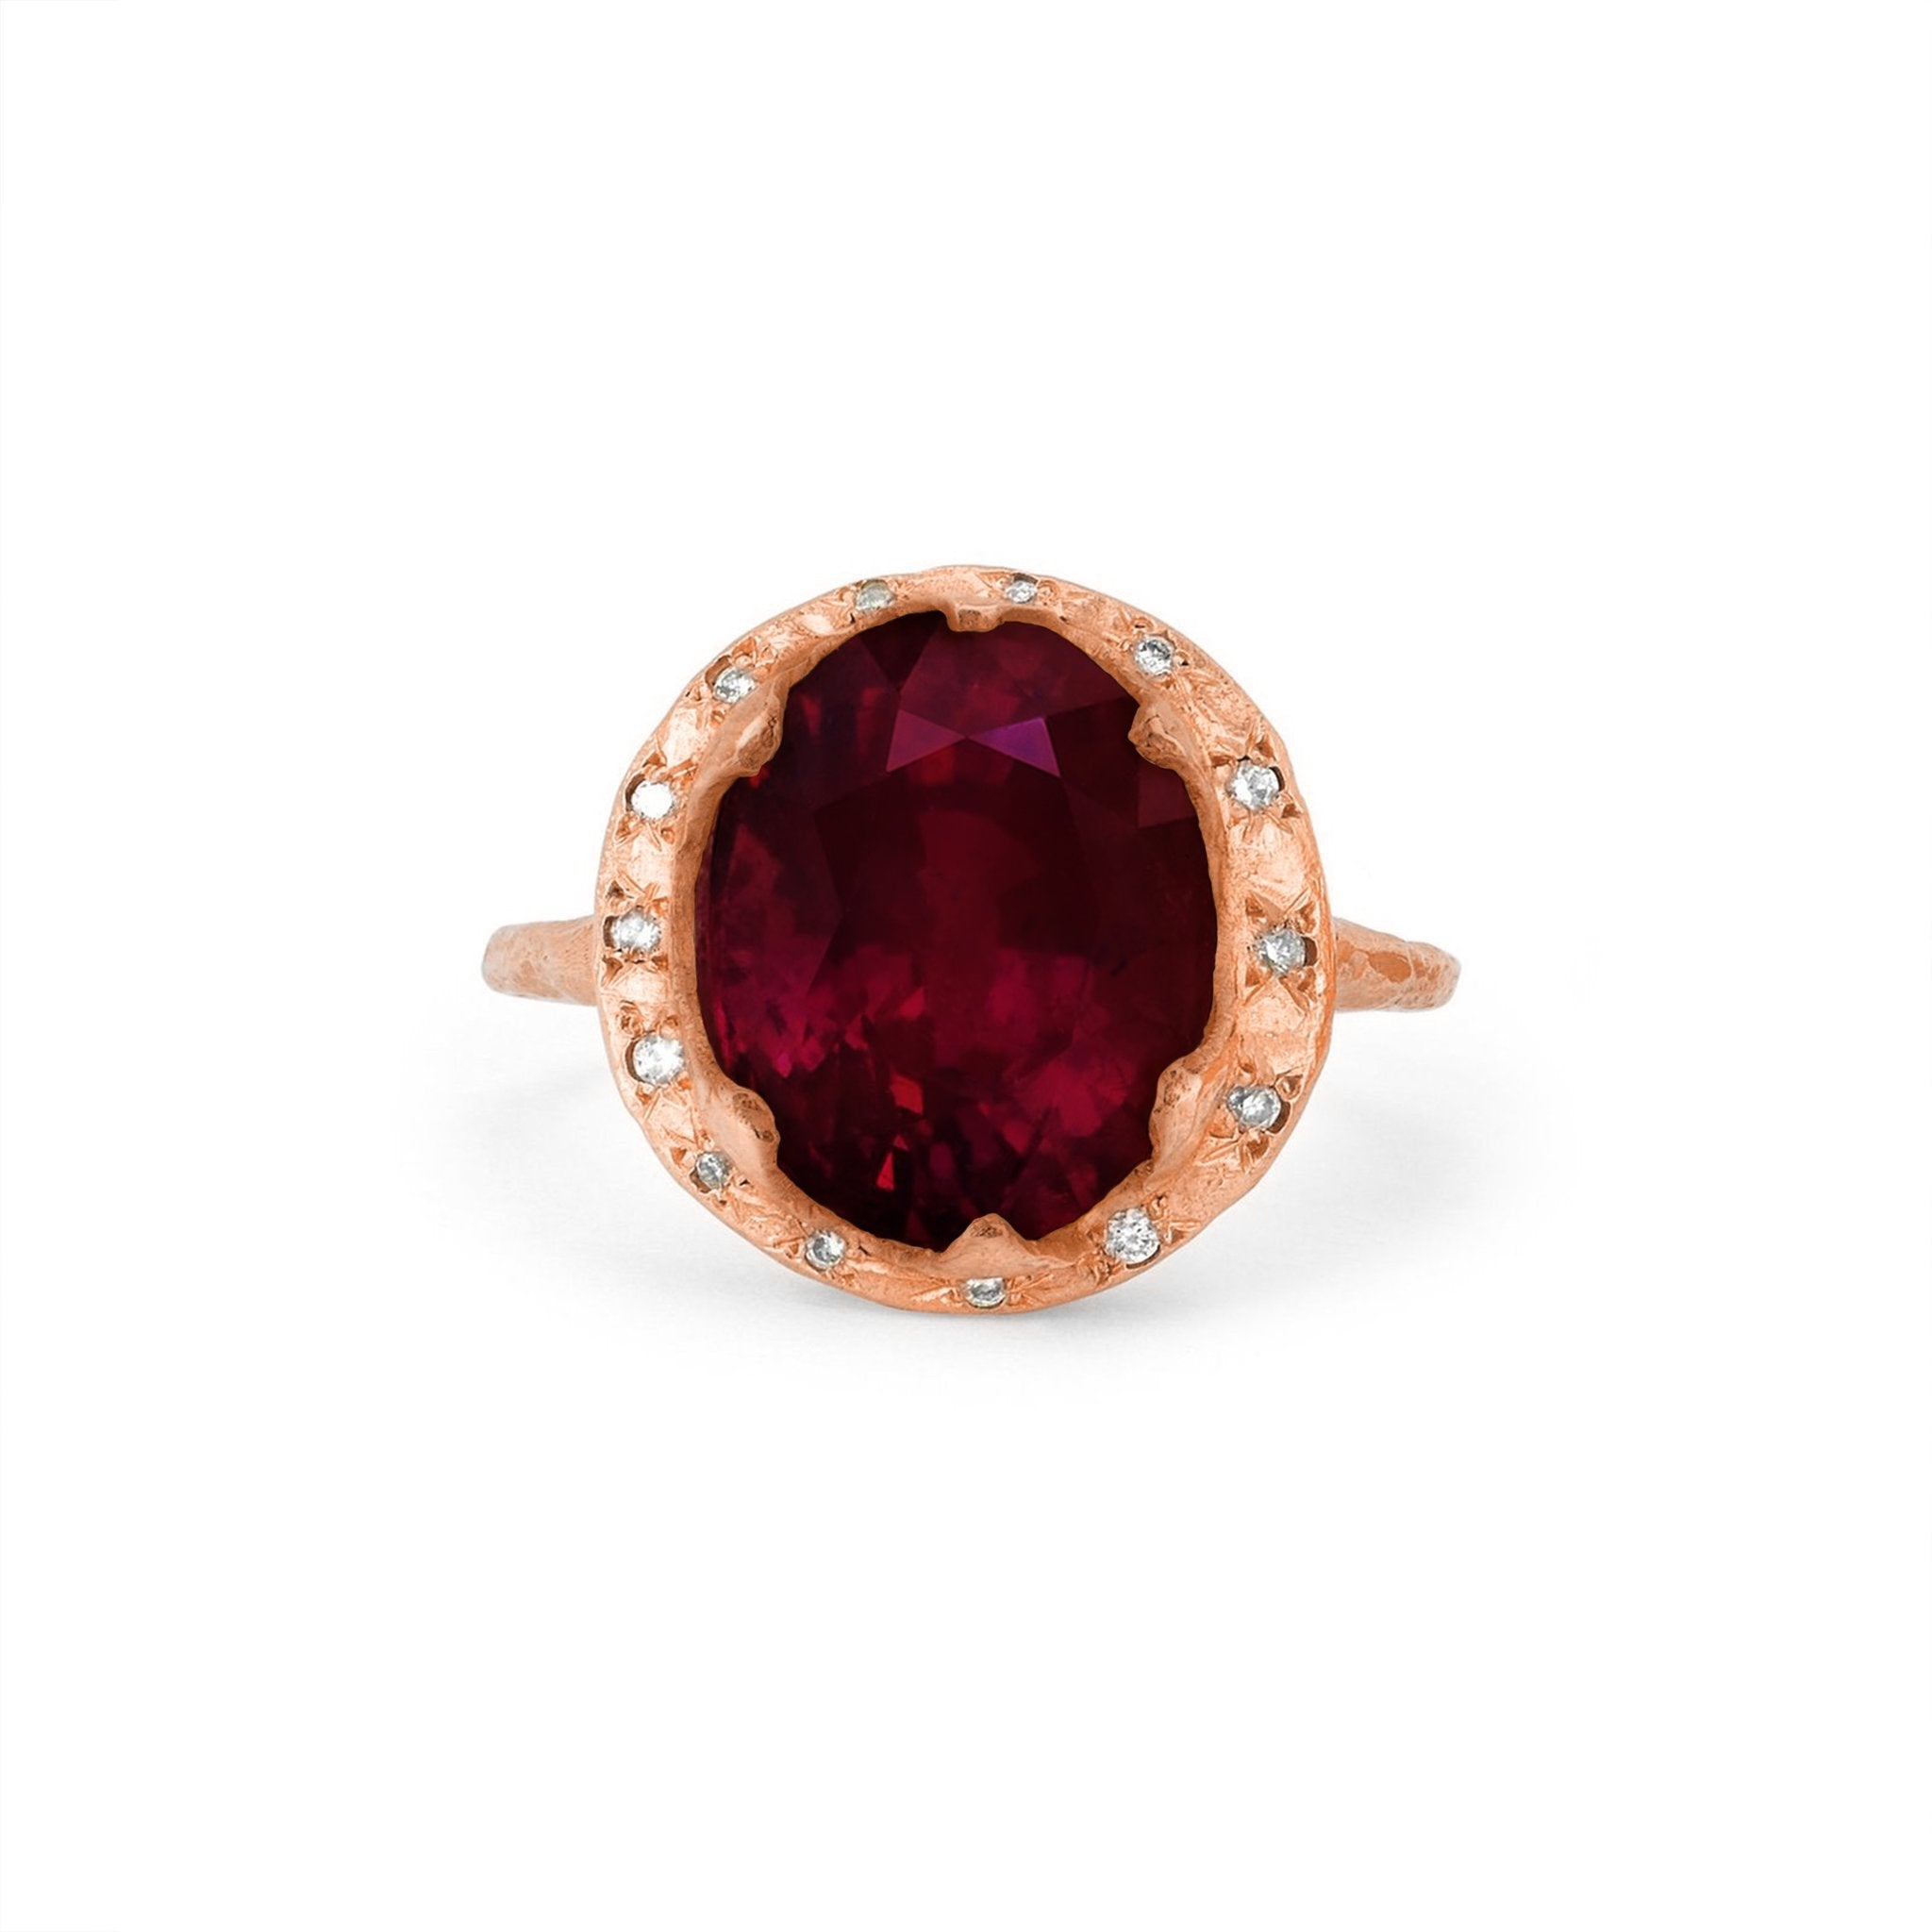 Queen Oval Ruby Ring with Sprinkled Diamonds